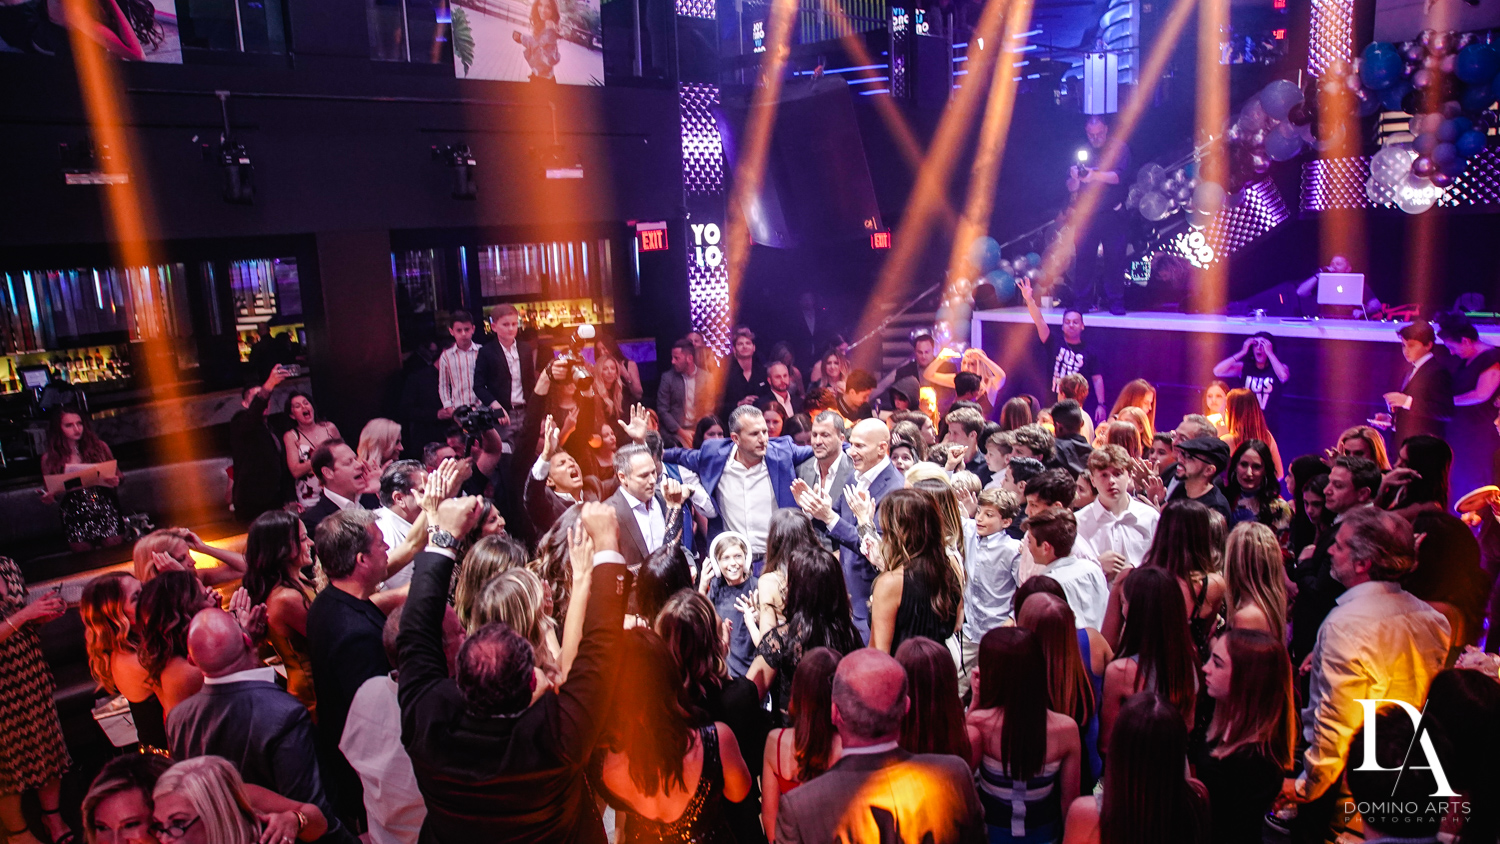 hora at Nightclub Bat Mitzvah at LIV in Fontainebleau Miami by Domino Arts Photography